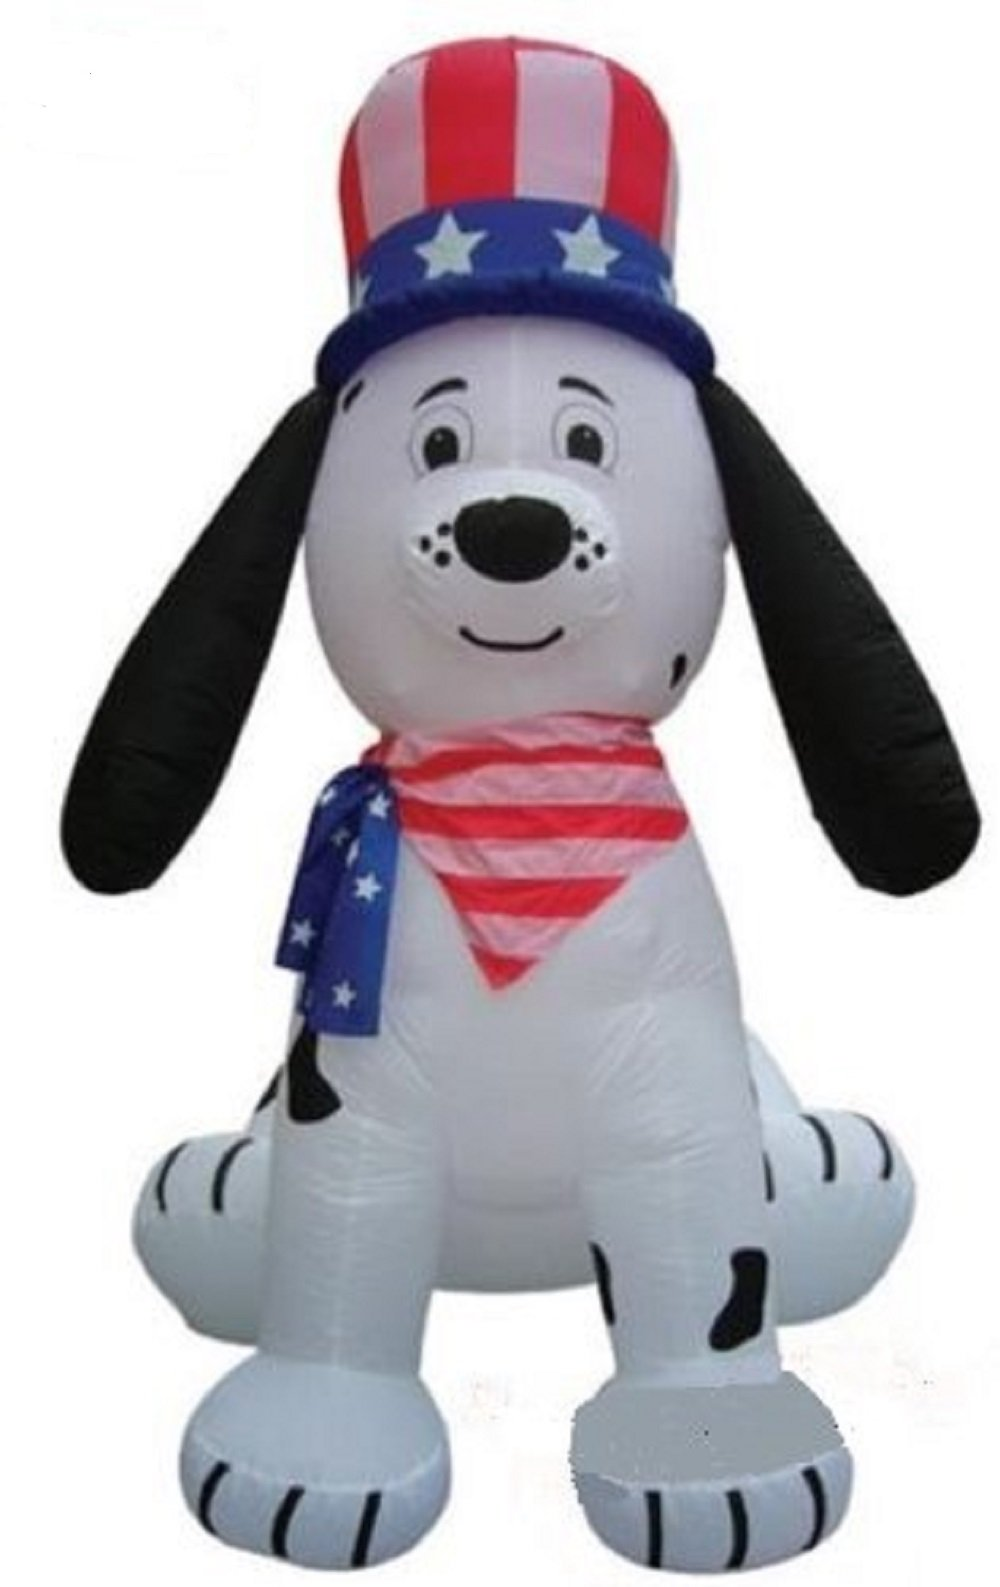 Gemmy Airblown Inflatable Patriotic Dalmatian Puppy Dog Wearing an American Flag Neckerchief and Hat, 8-foot Tall